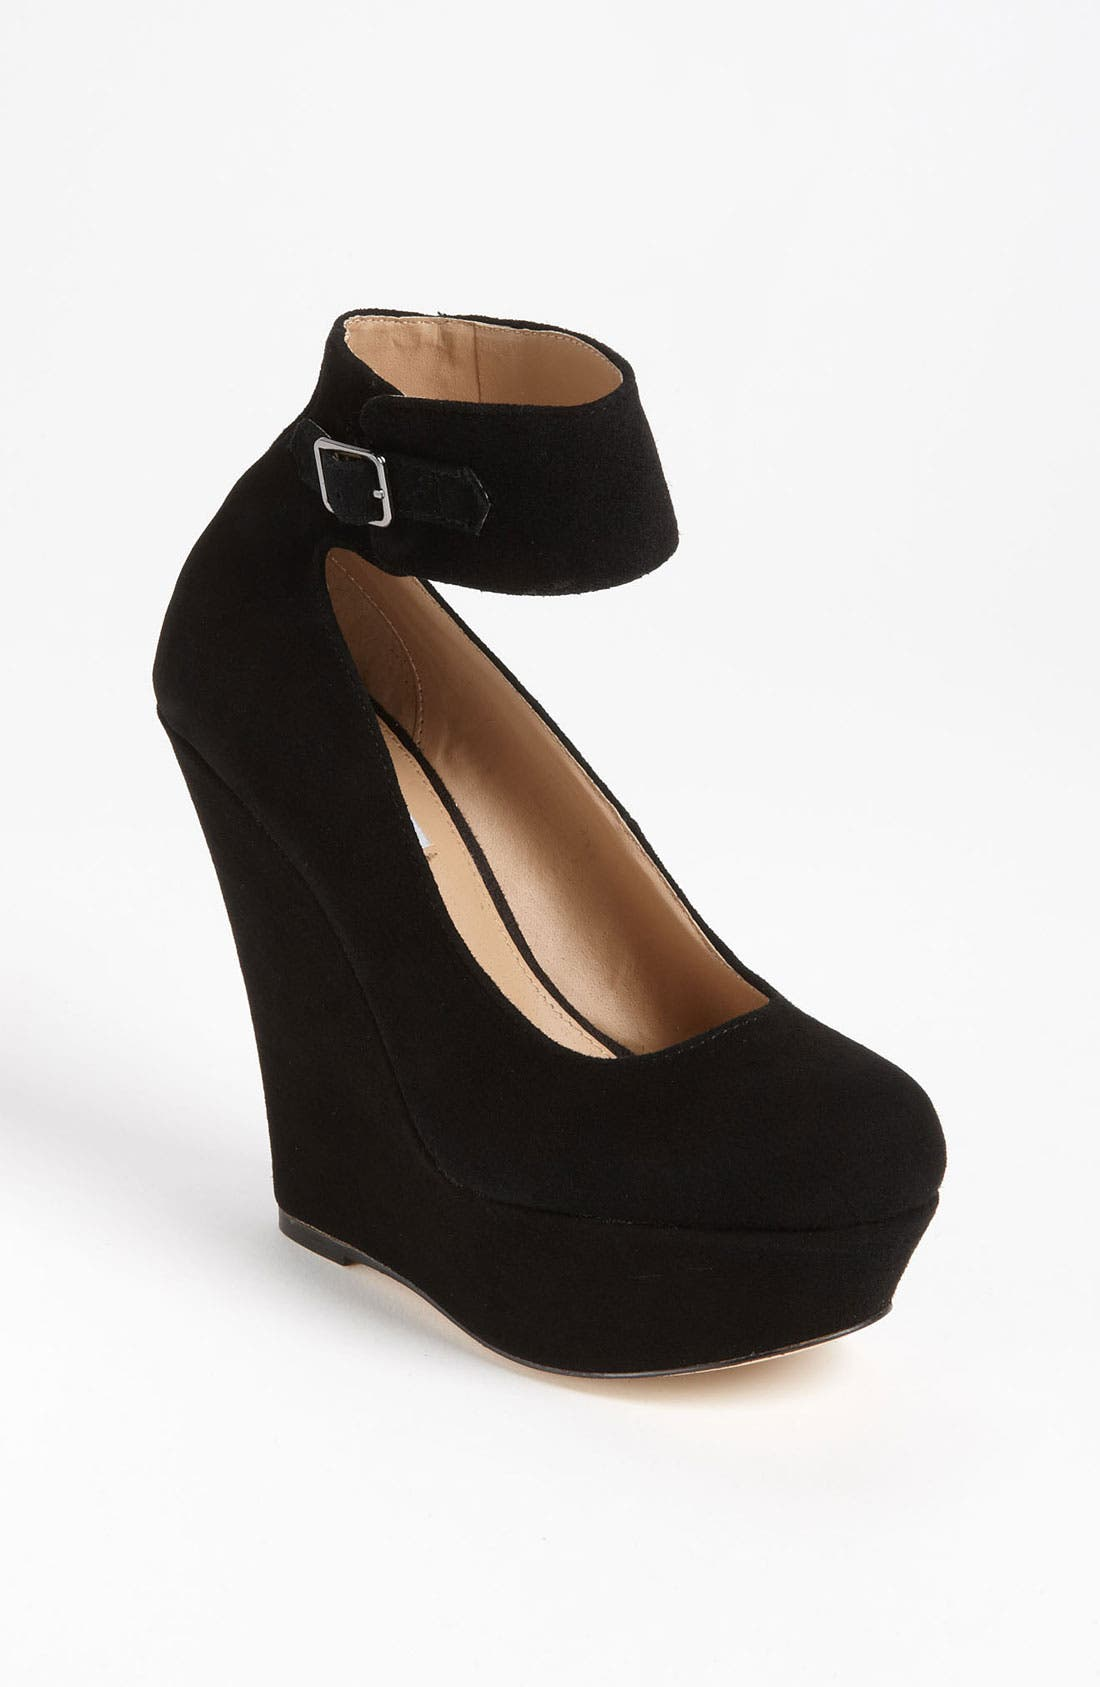 Main Image - Steve Madden 'Pattii' Wedge Pump